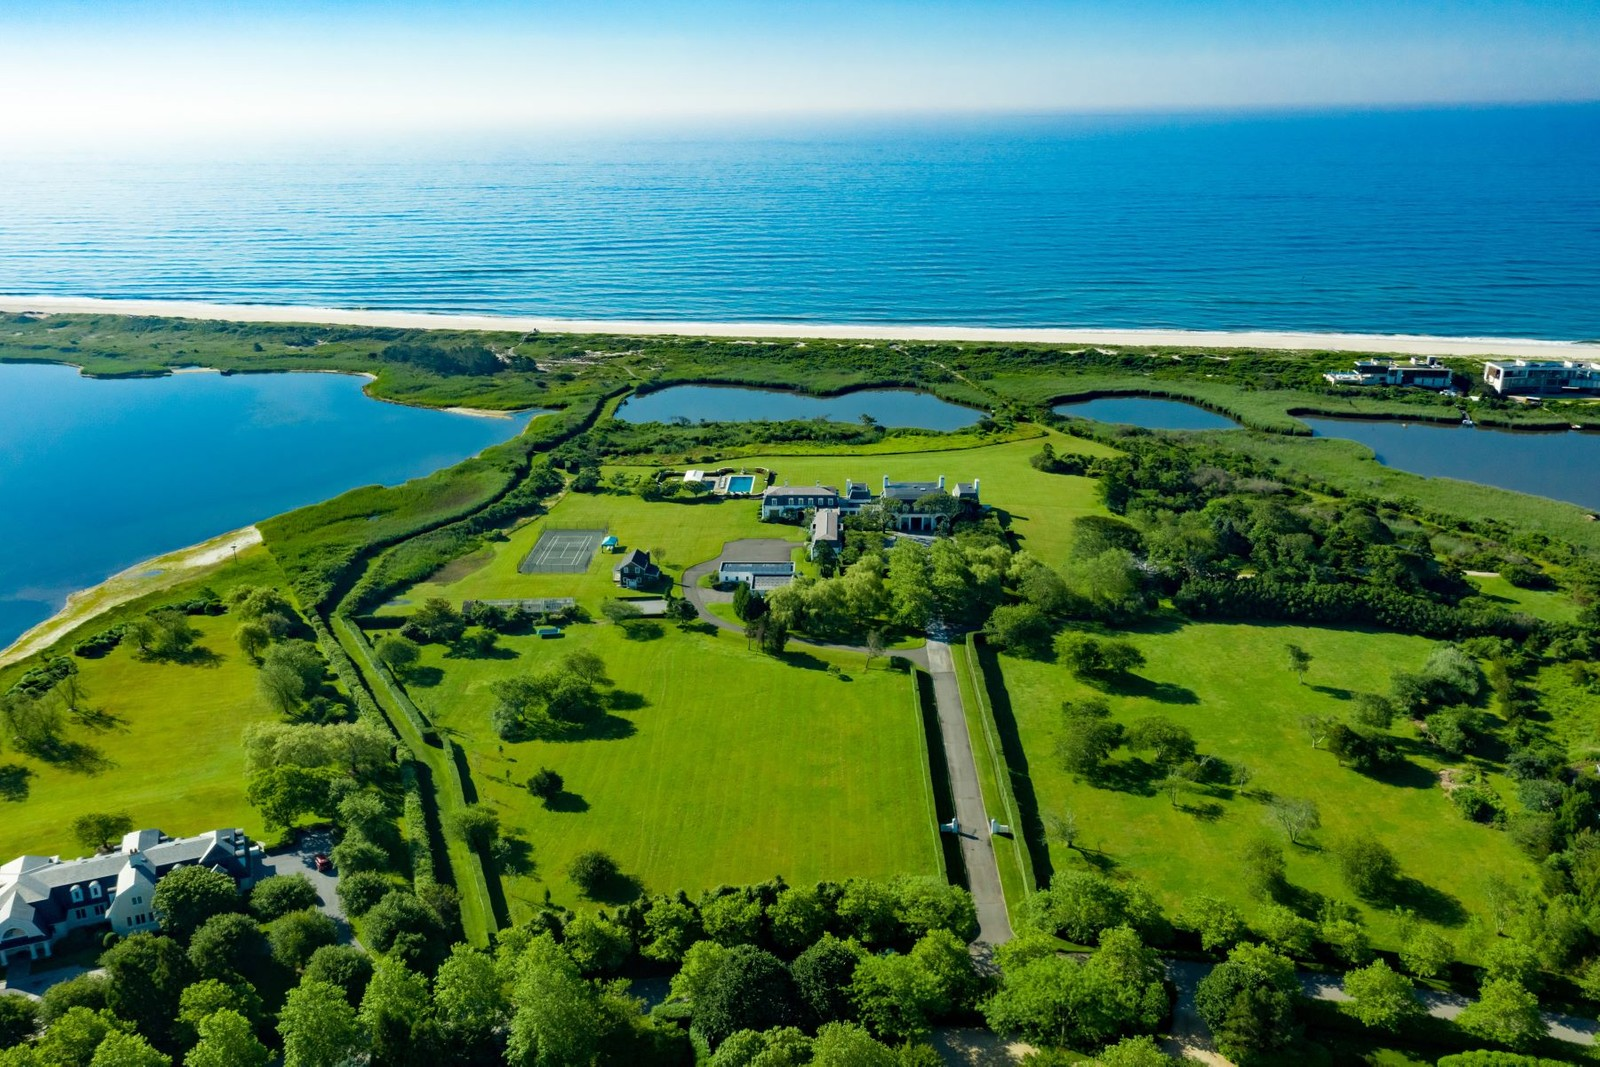 house for sale in Southampton, New York, home, real estate, property, villa, mansion, palace, dream house, Ahava Jerusalem, home, luxury, ocean front, beach, swimming pool, holiday home, ocean front, msl, property network